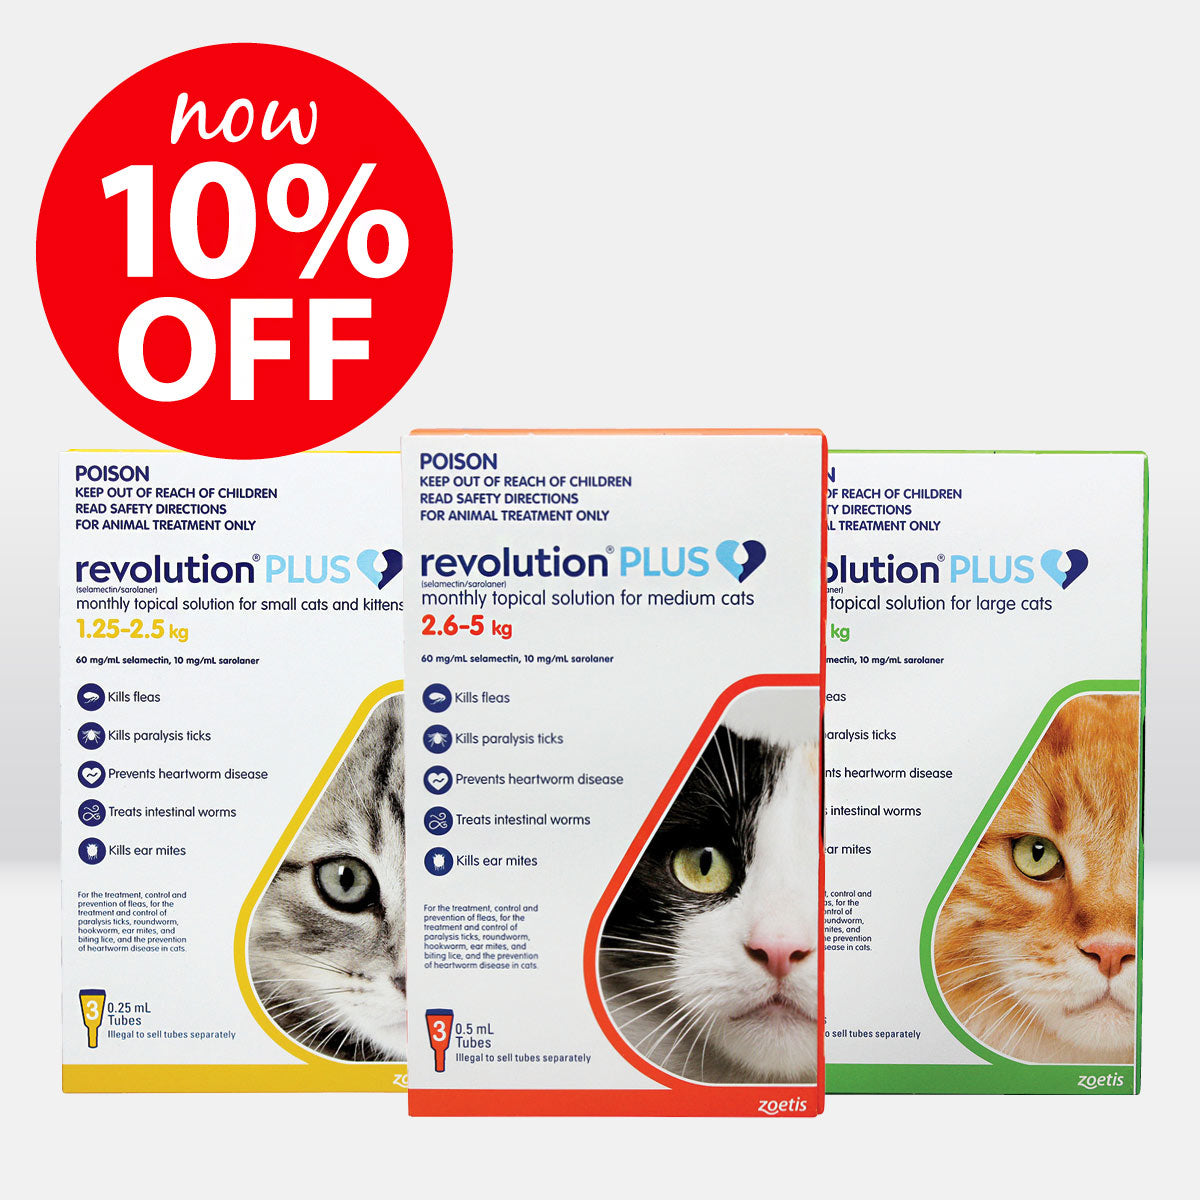 Revolution Plus for Cats ON SALE NOW